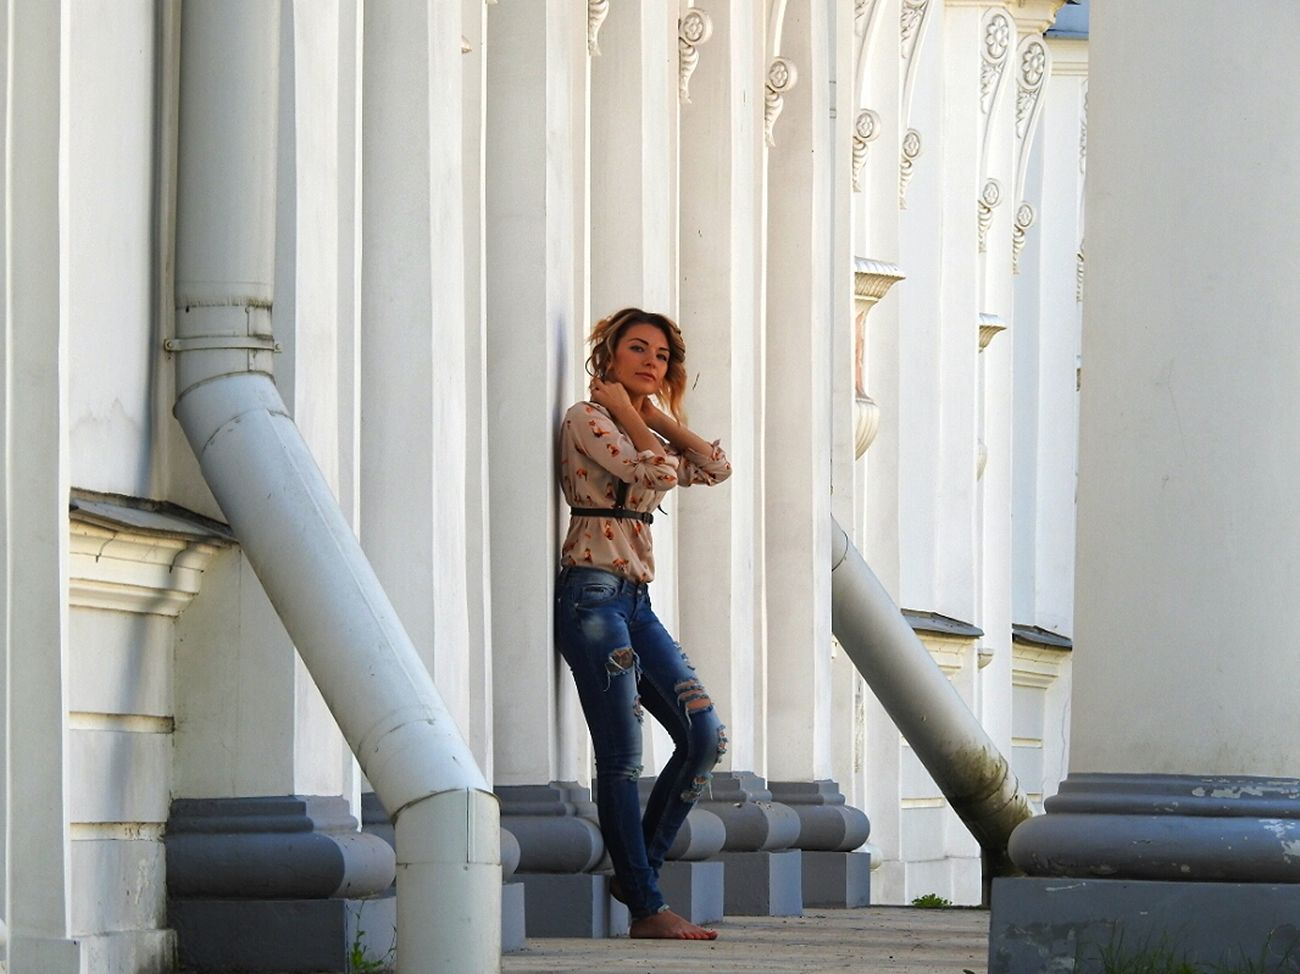 Photosession No Shoes Sankt-Petersburg Elagin Island Russia Girl Park Spy Zoom Girl Power